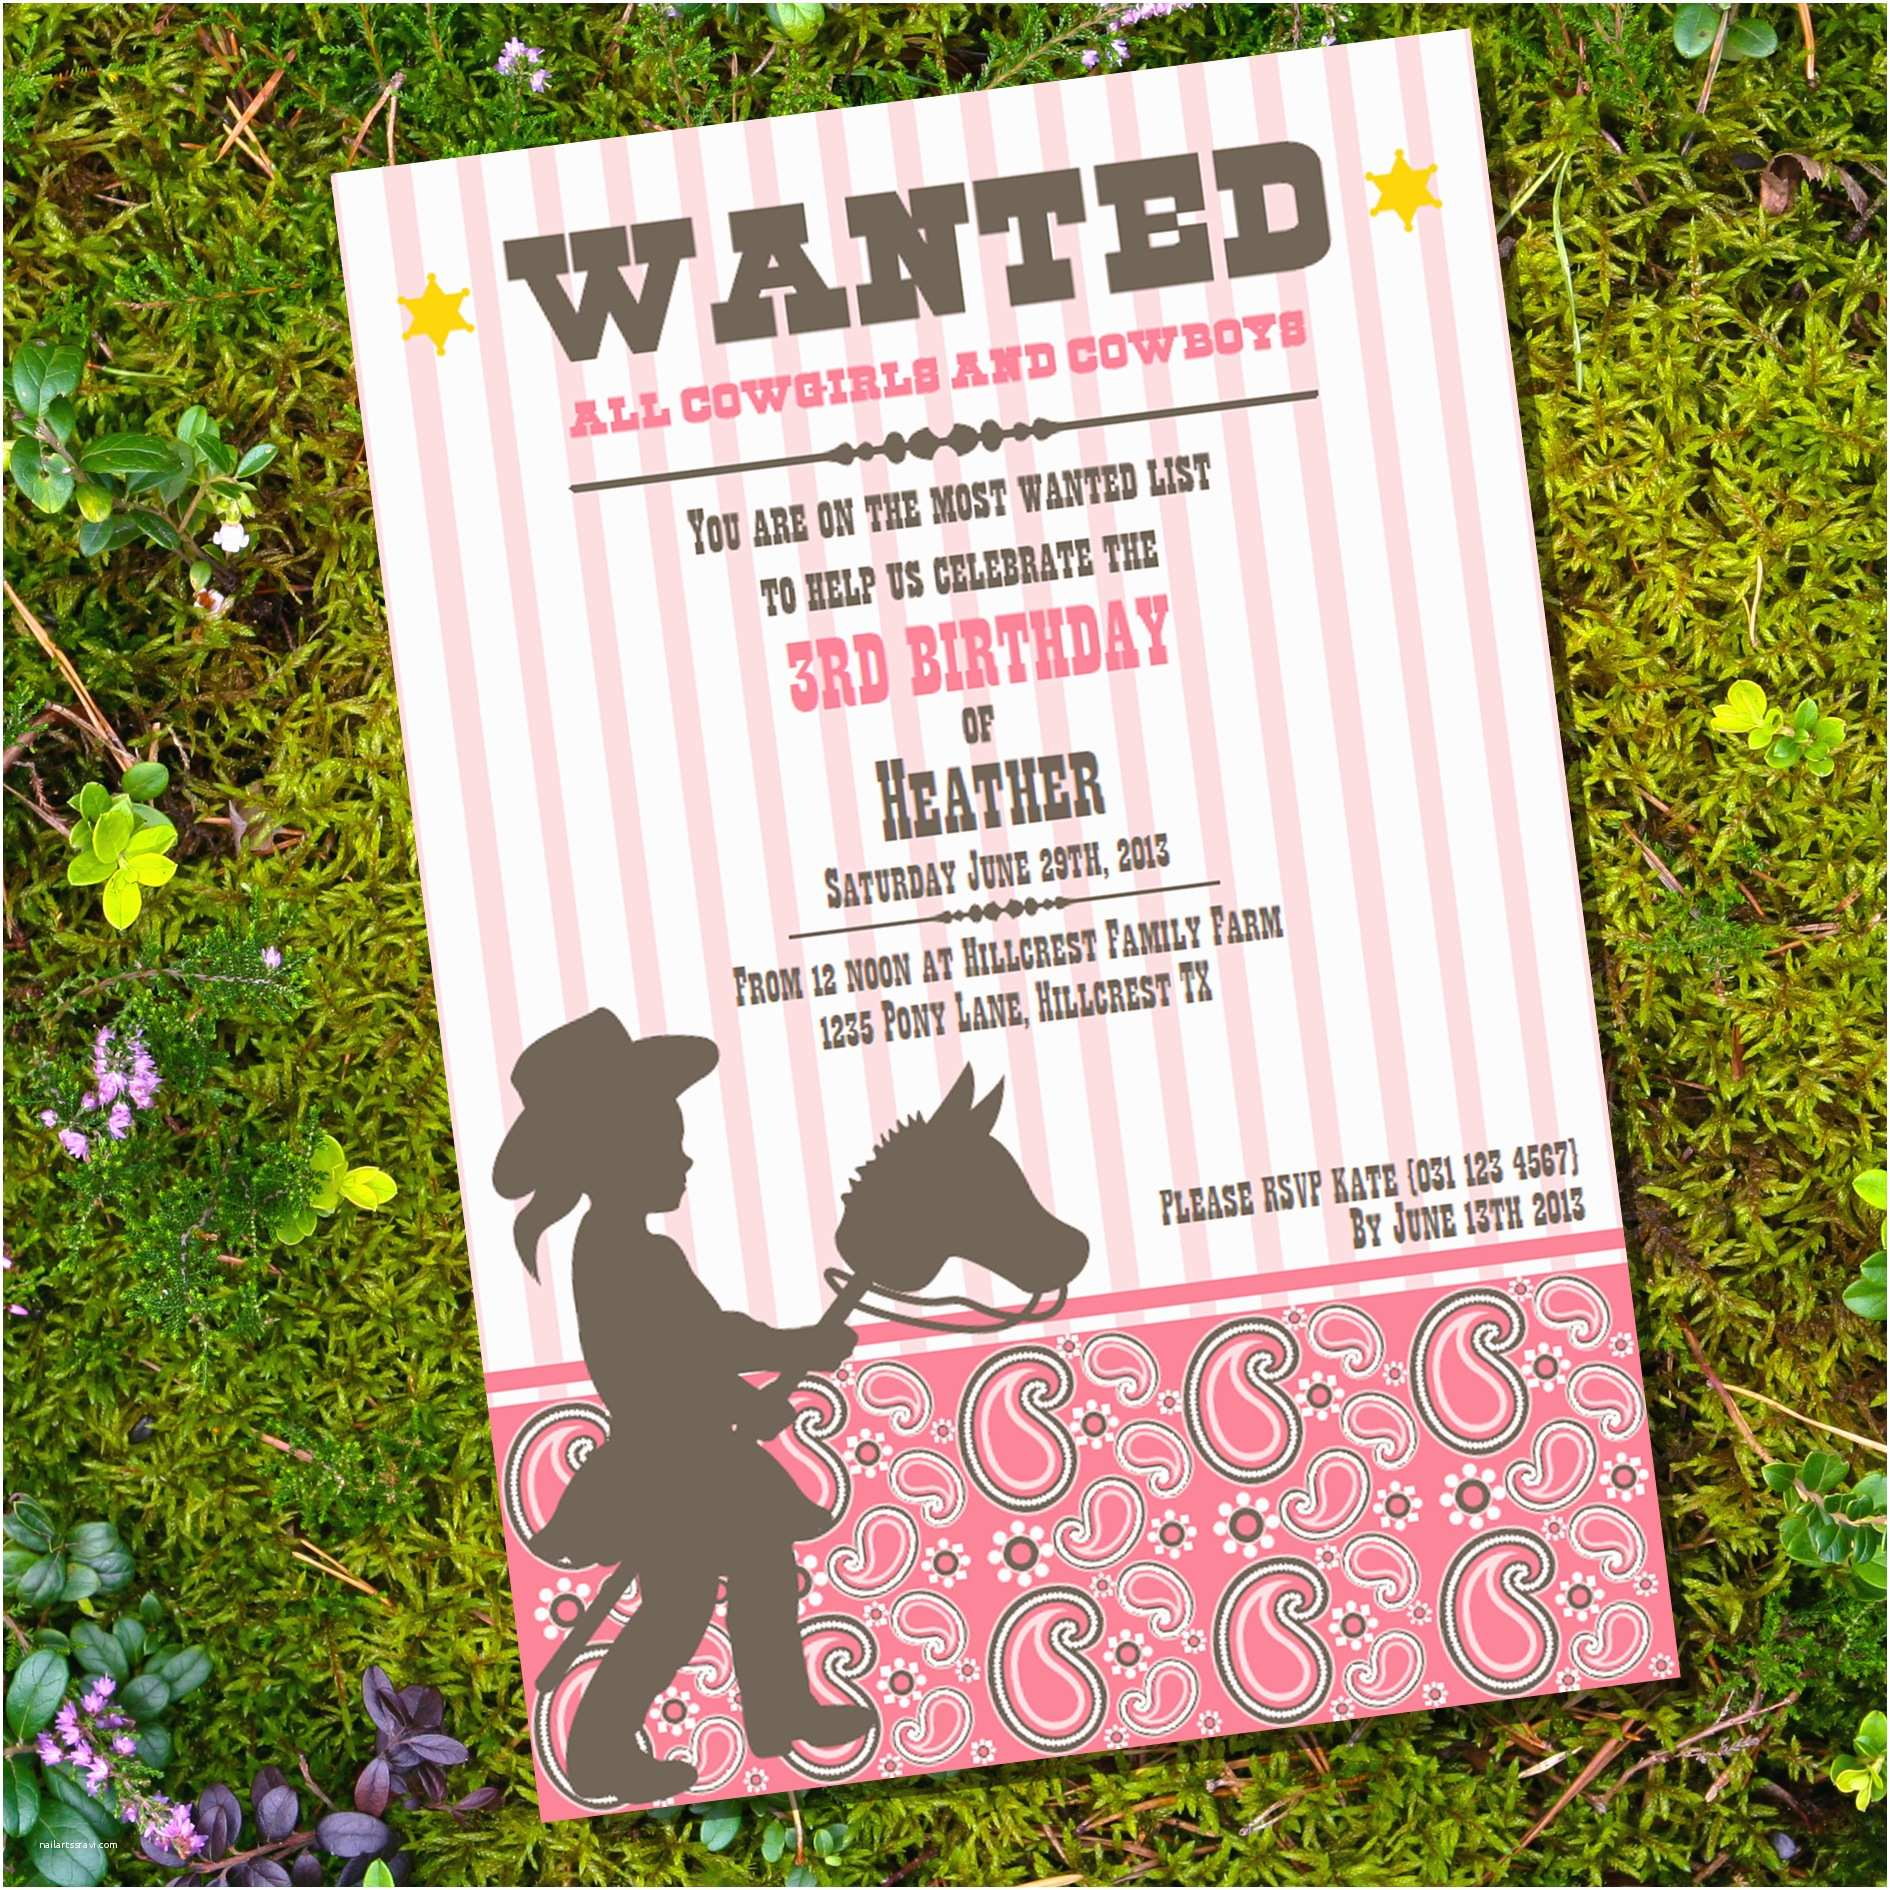 Cowgirl Party Invitations top 14 Cowgirl Birthday Party Invitations